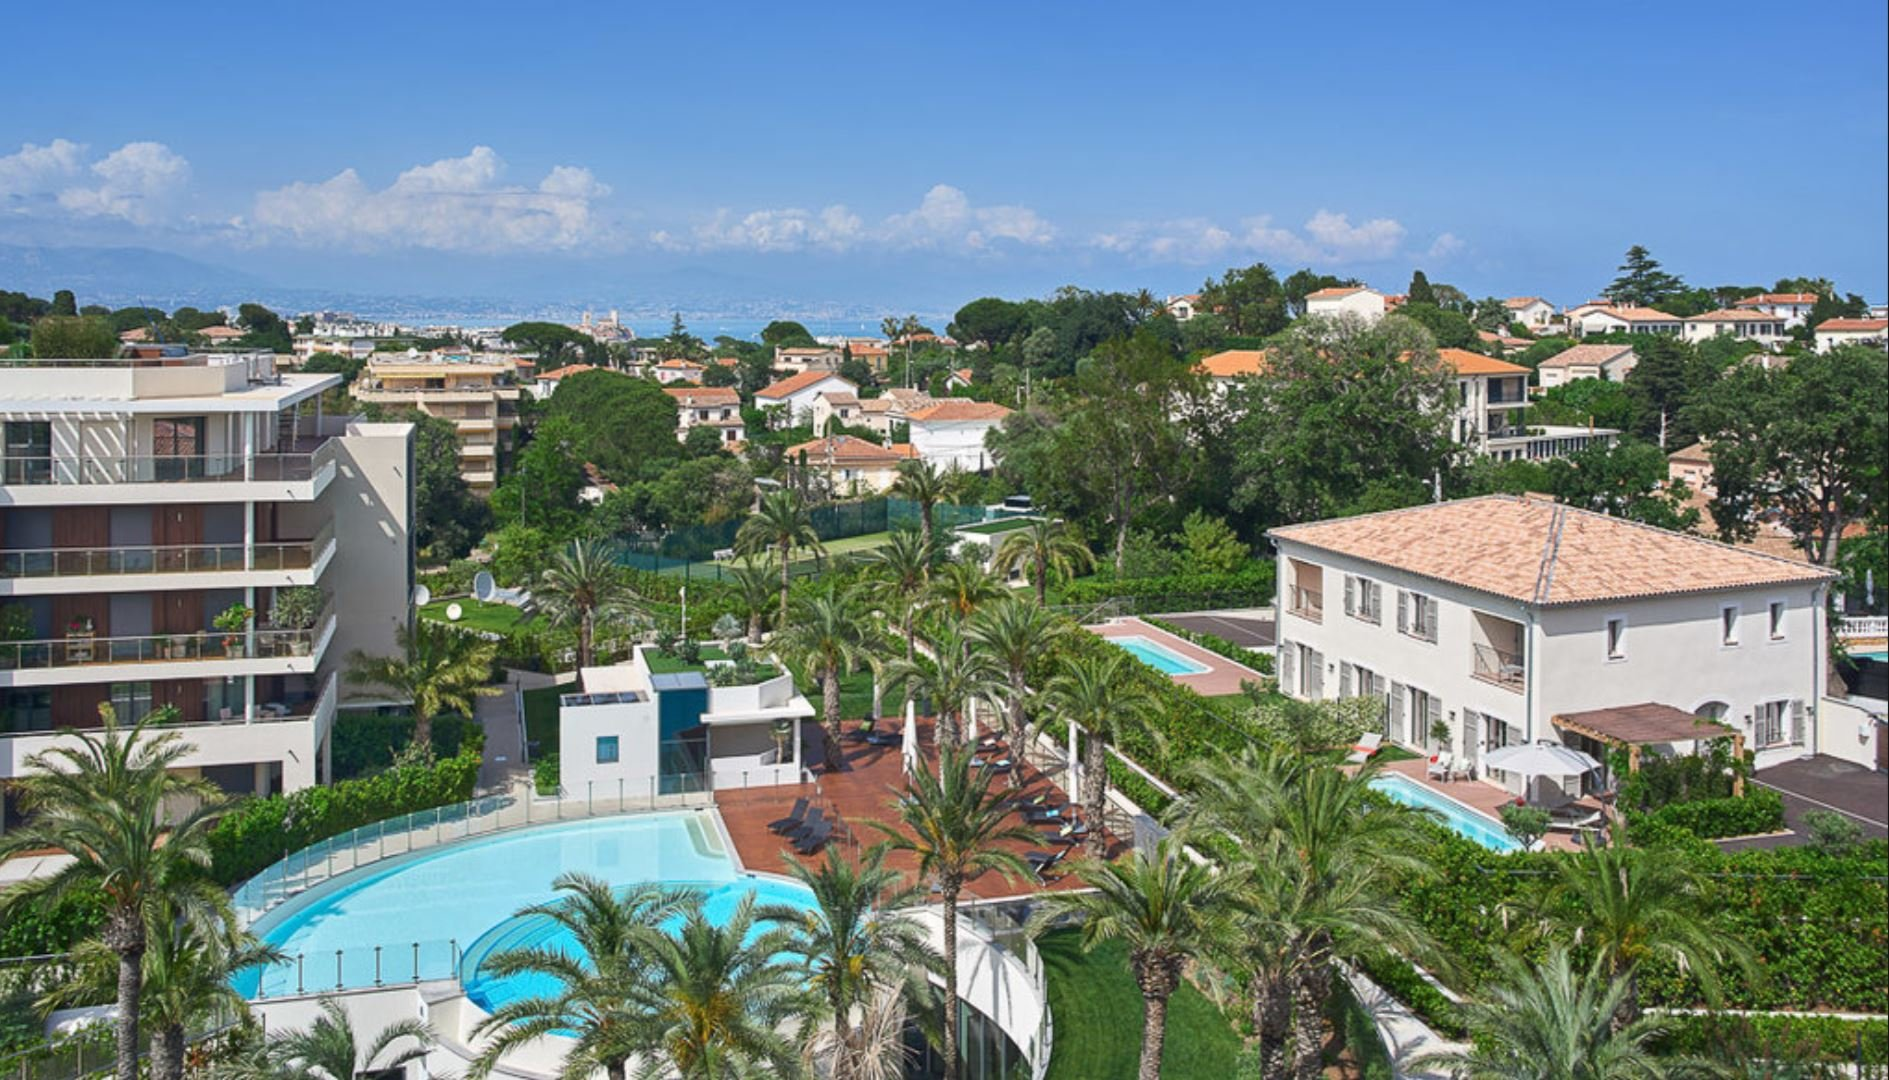 Cap d'Antibes - 4 bedrooms townhouse  with garden and private swimming pool in an exceptional residence.